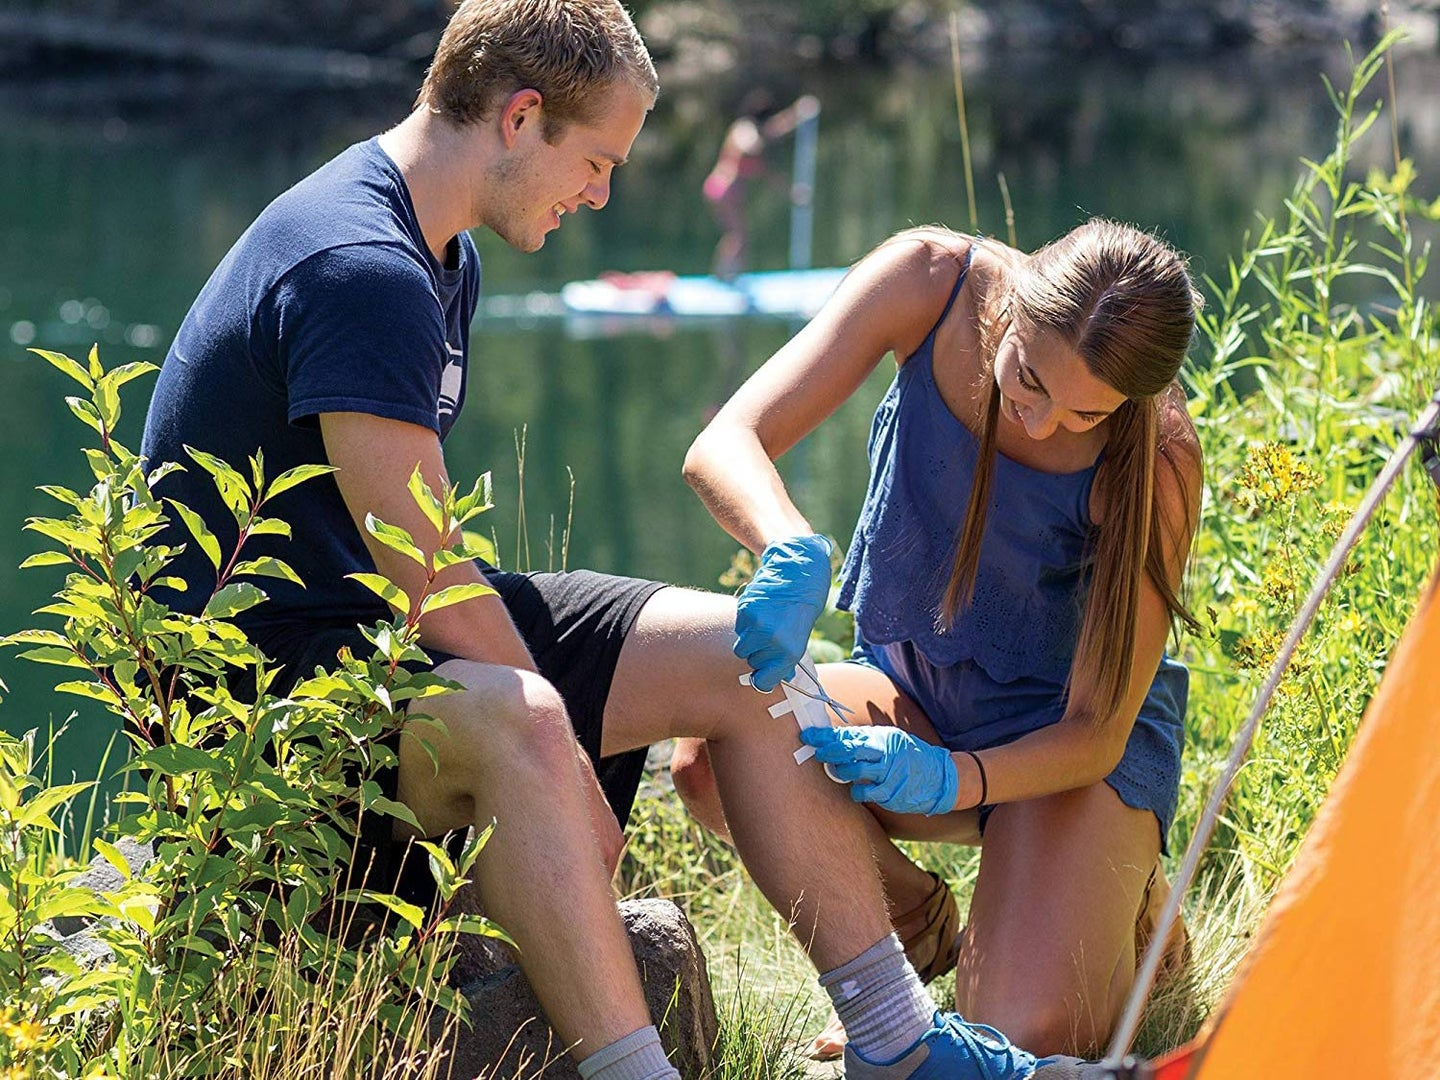 Woman administering first aid to a man's knee.